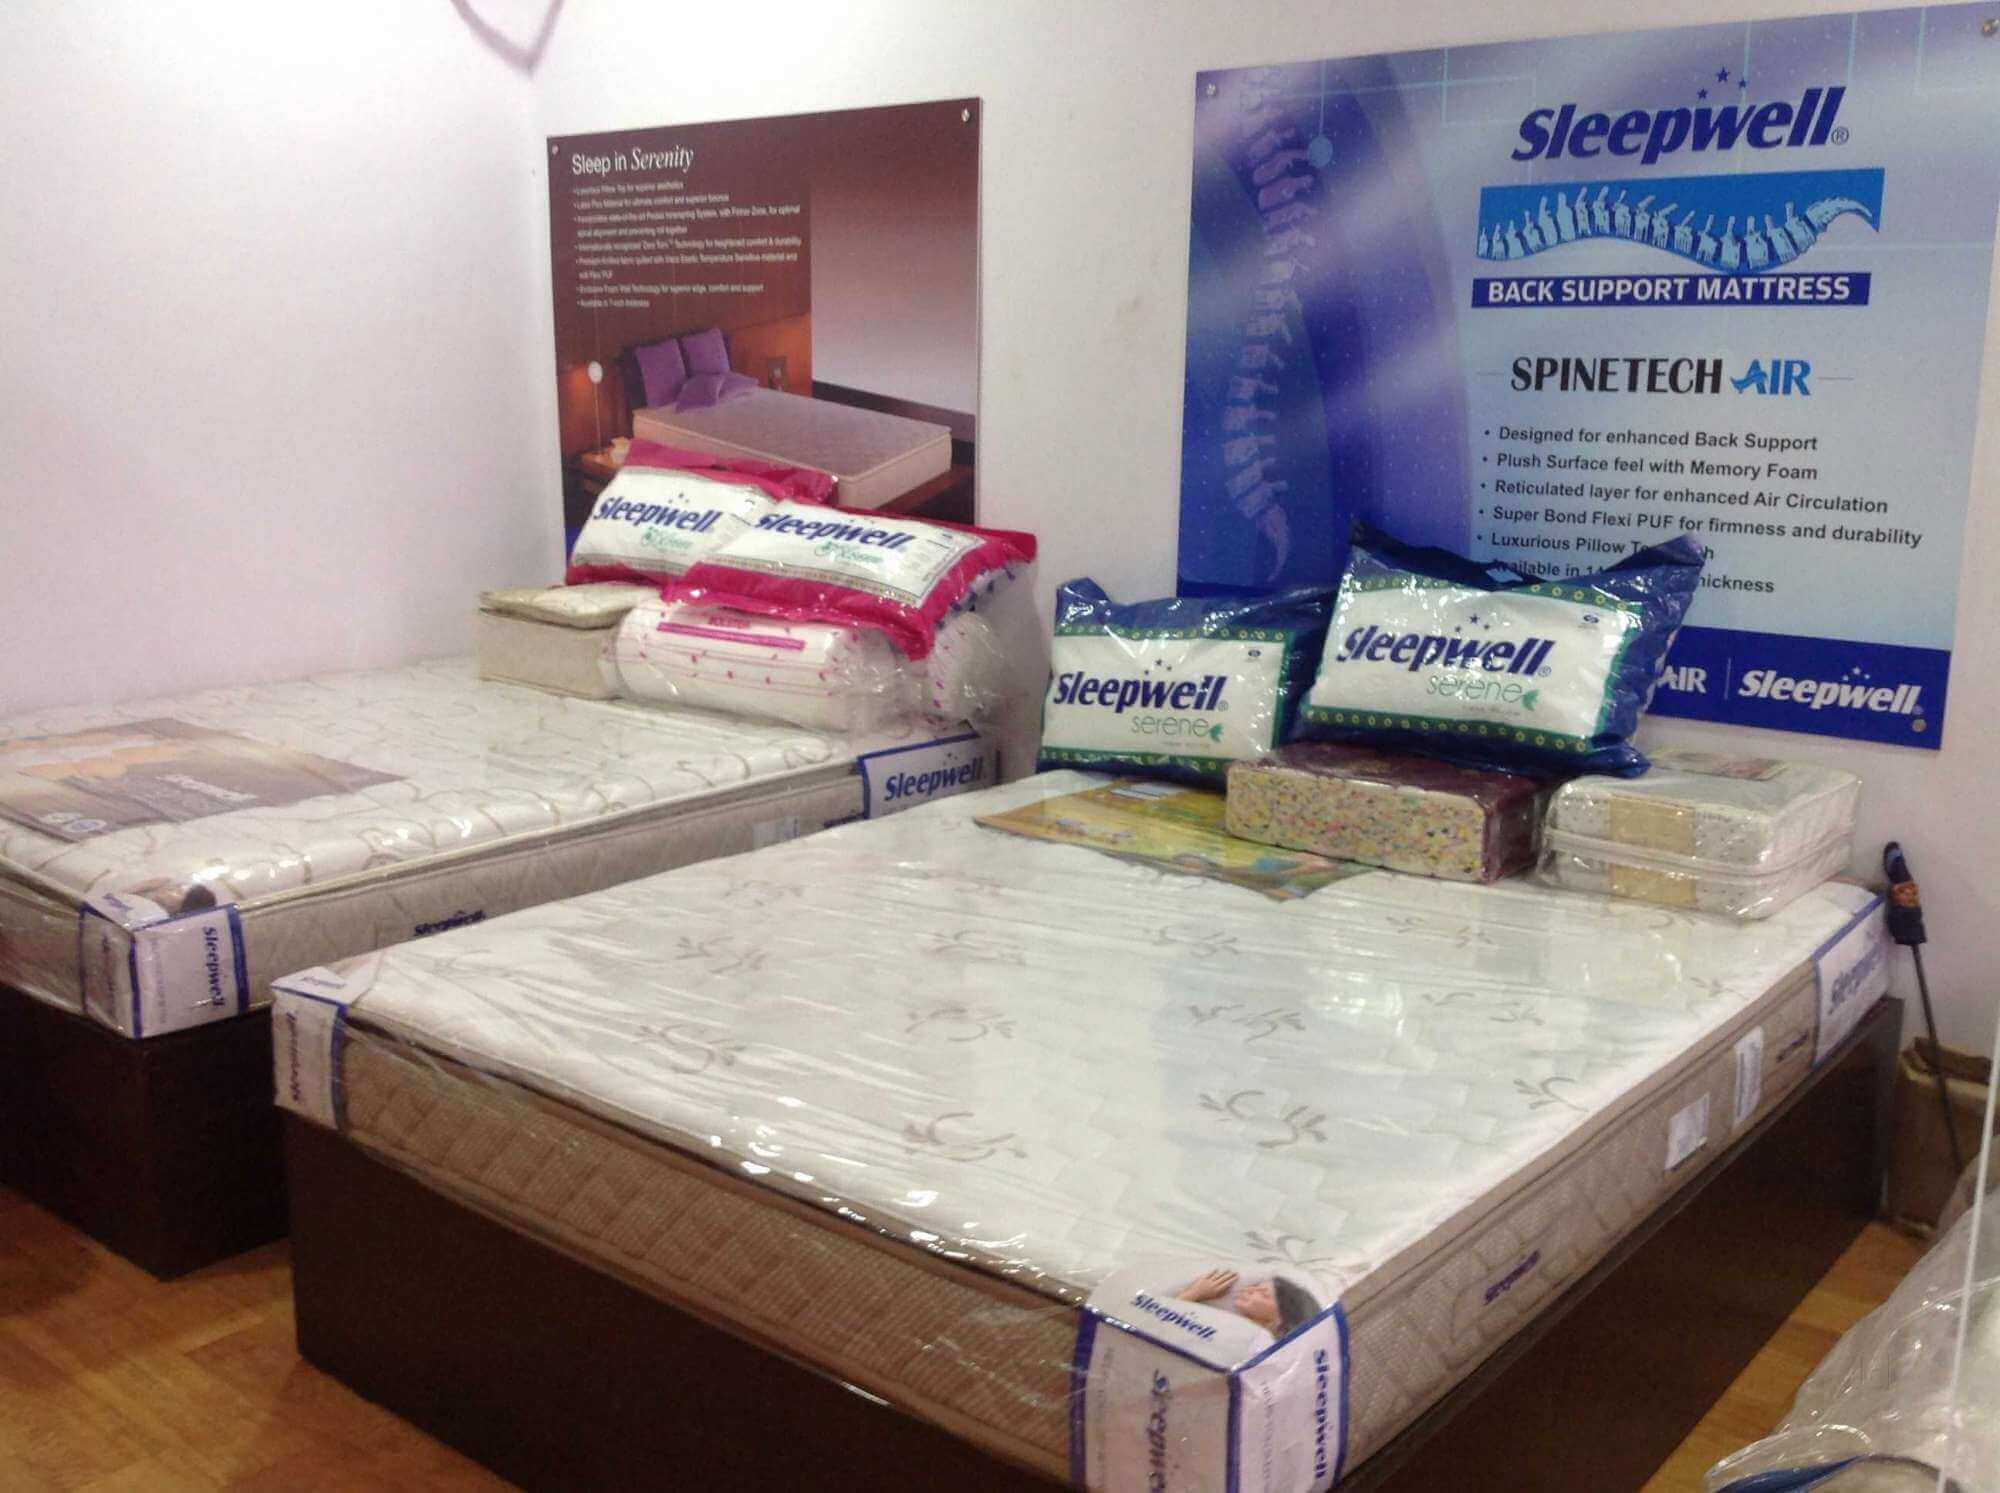 Buy Sleepwell Spinetech Air In Delhi At Best Price At Fine